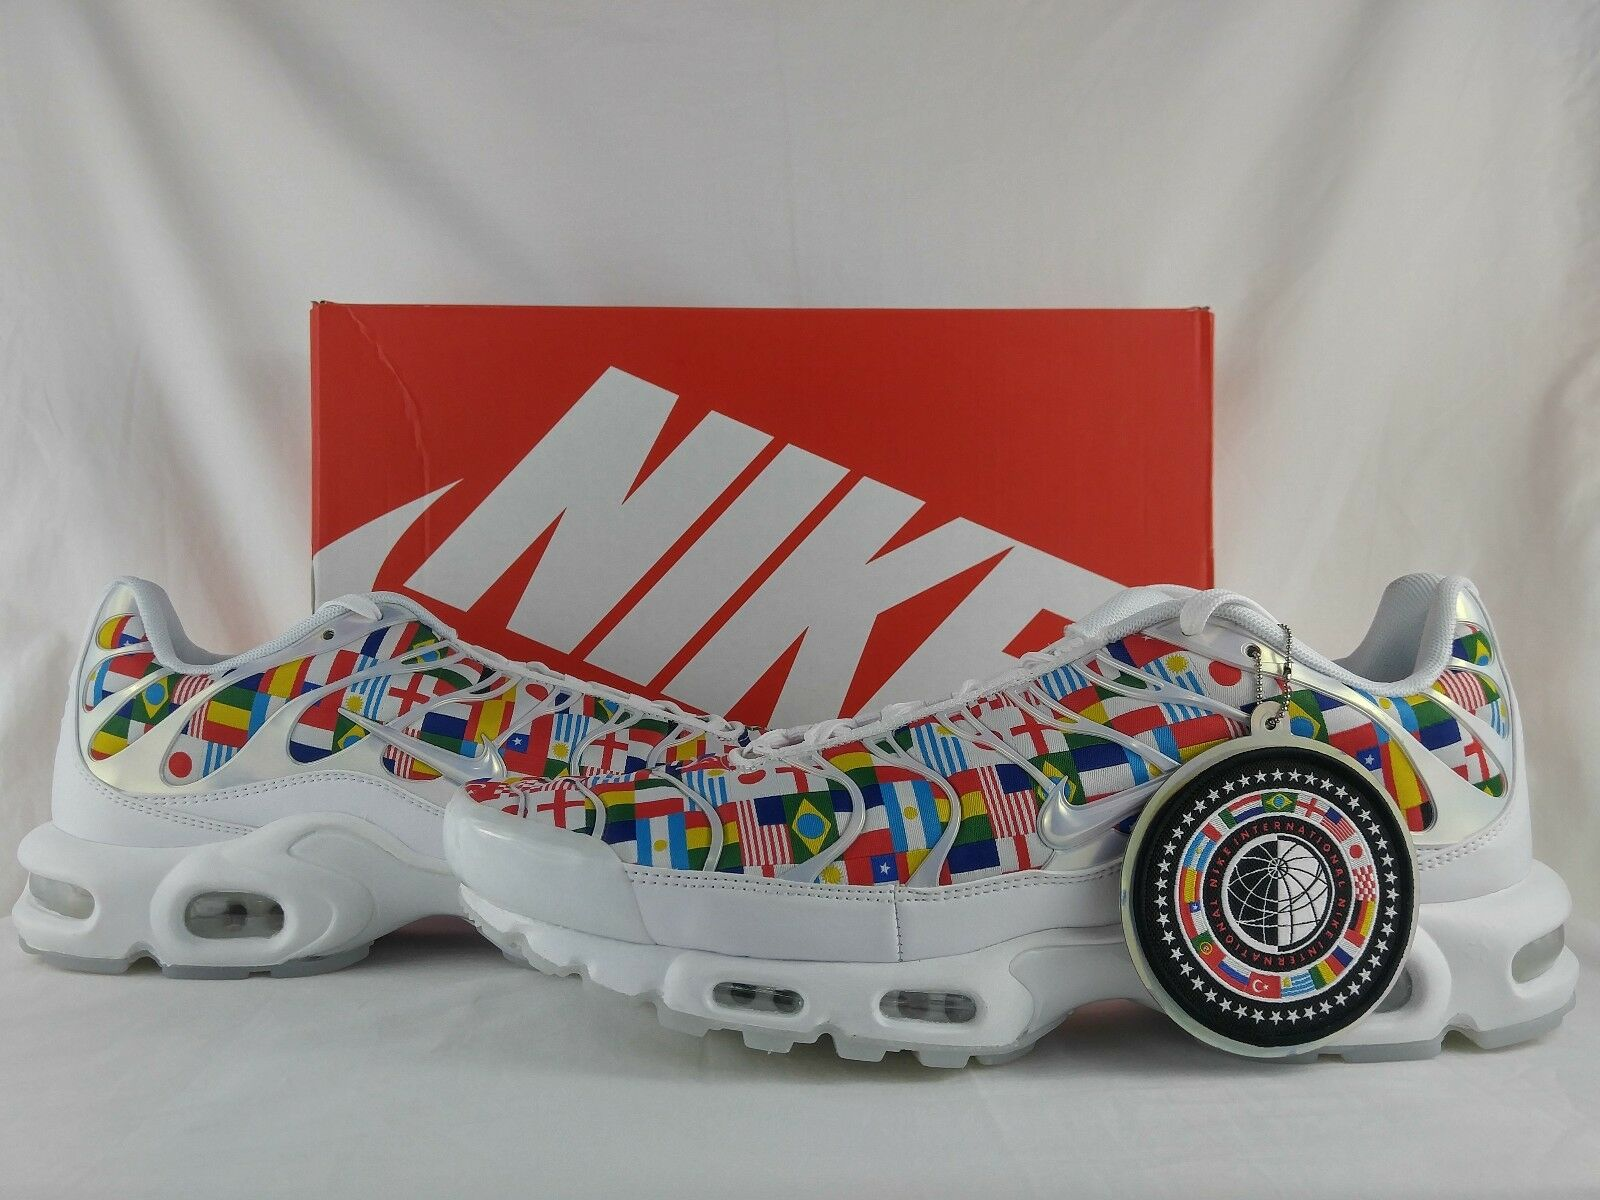 Nike Air Max Plus NIC QS International World Cup Flag White Multi AO5117-100 Men